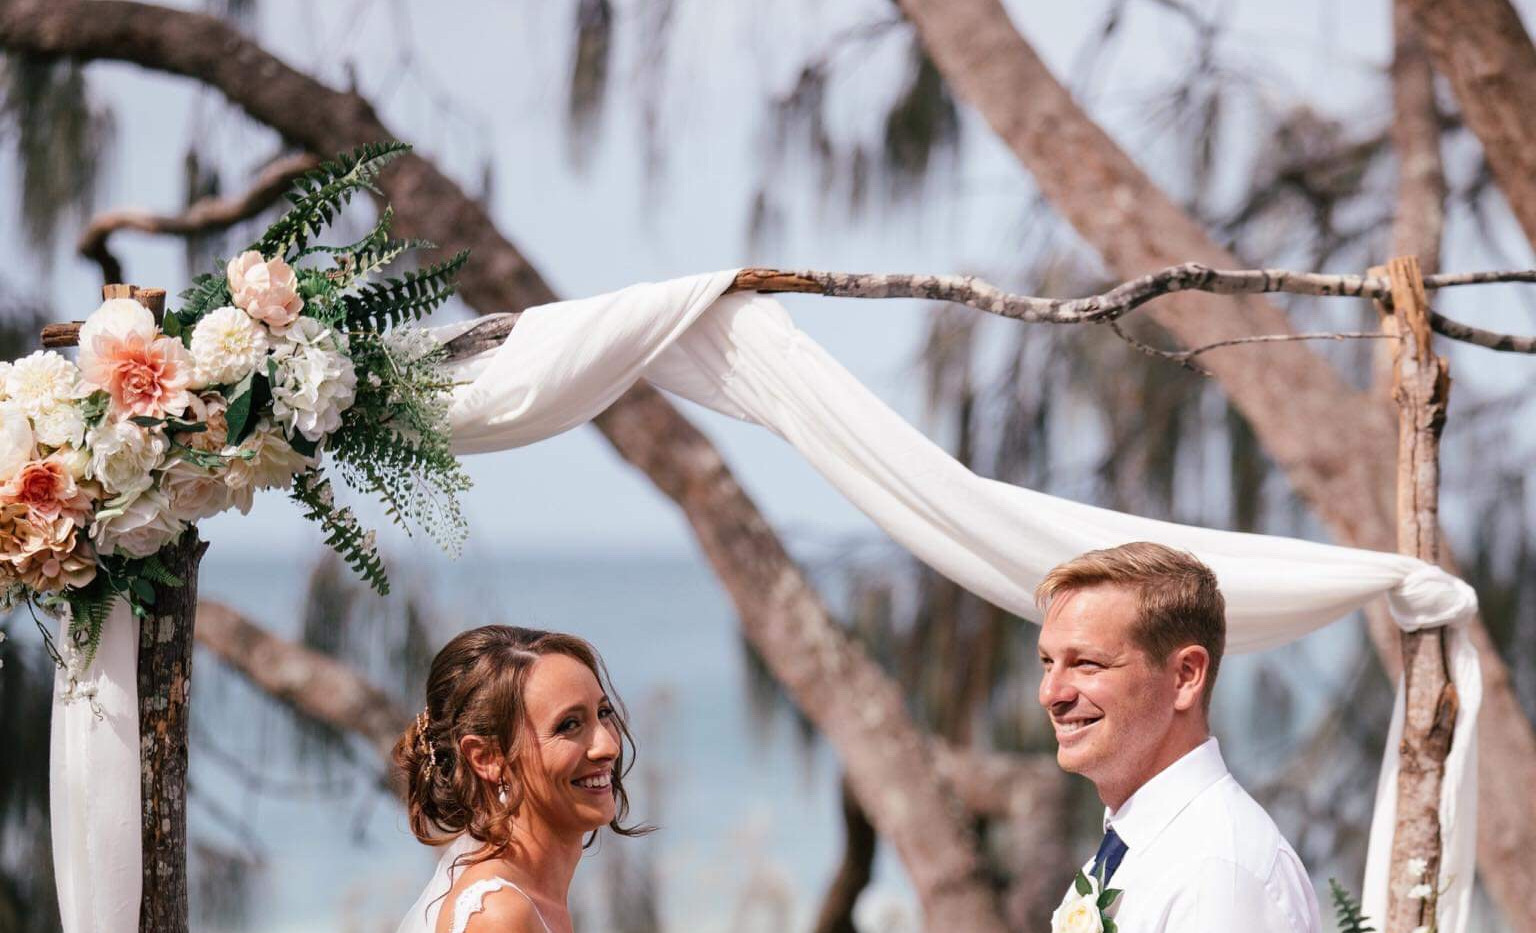 Natural beauty wedding package